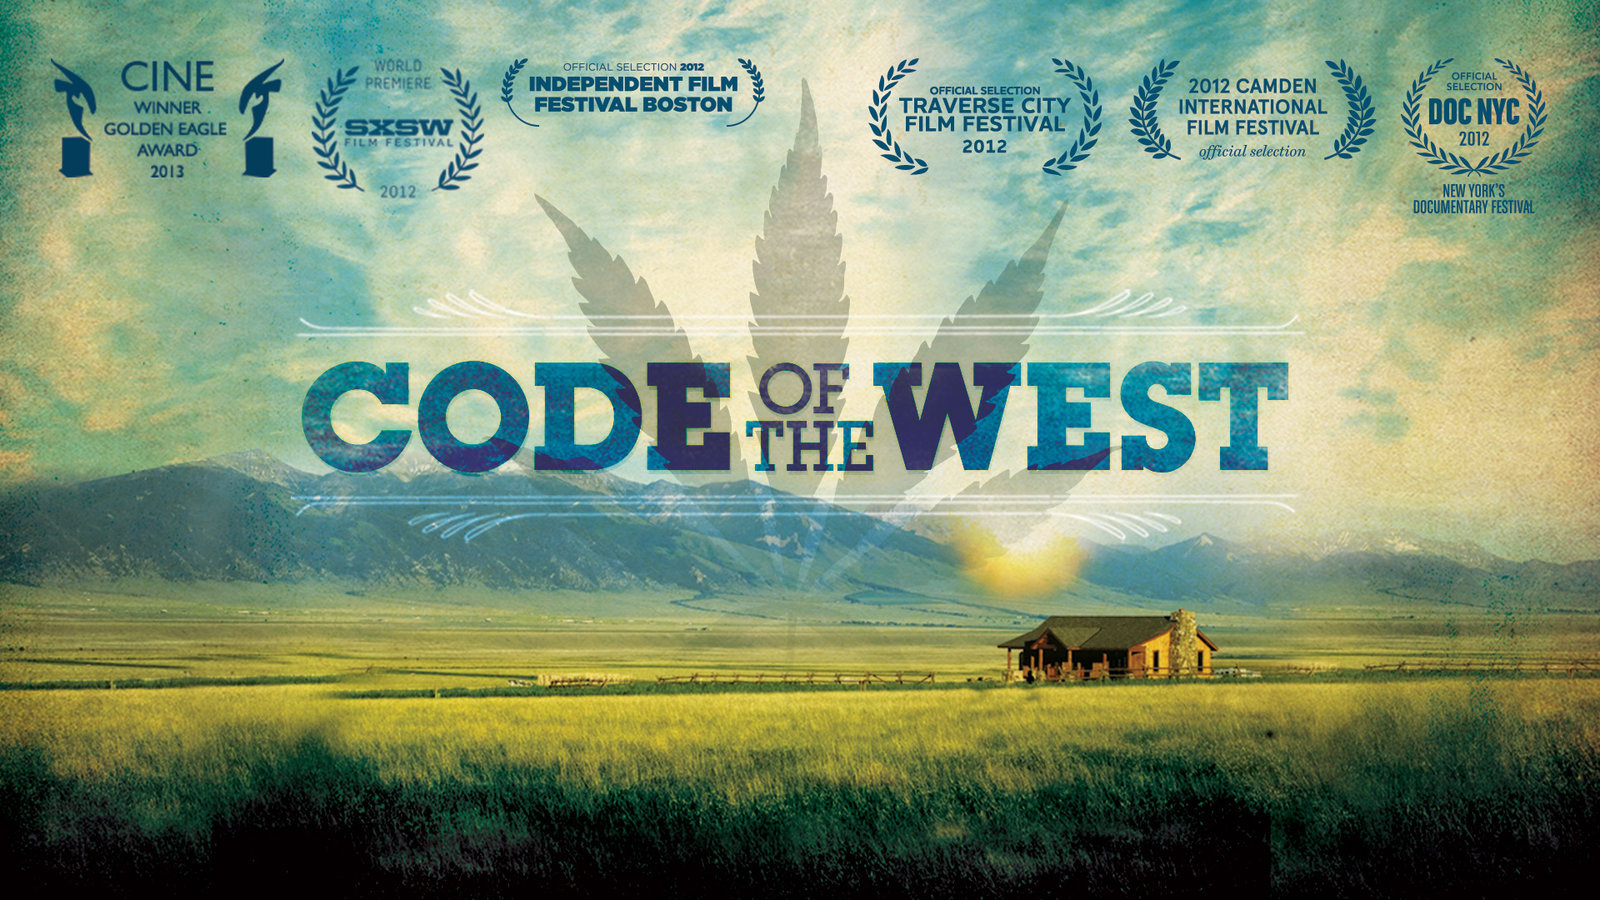 Code of the West - Marijuana and the Political Process